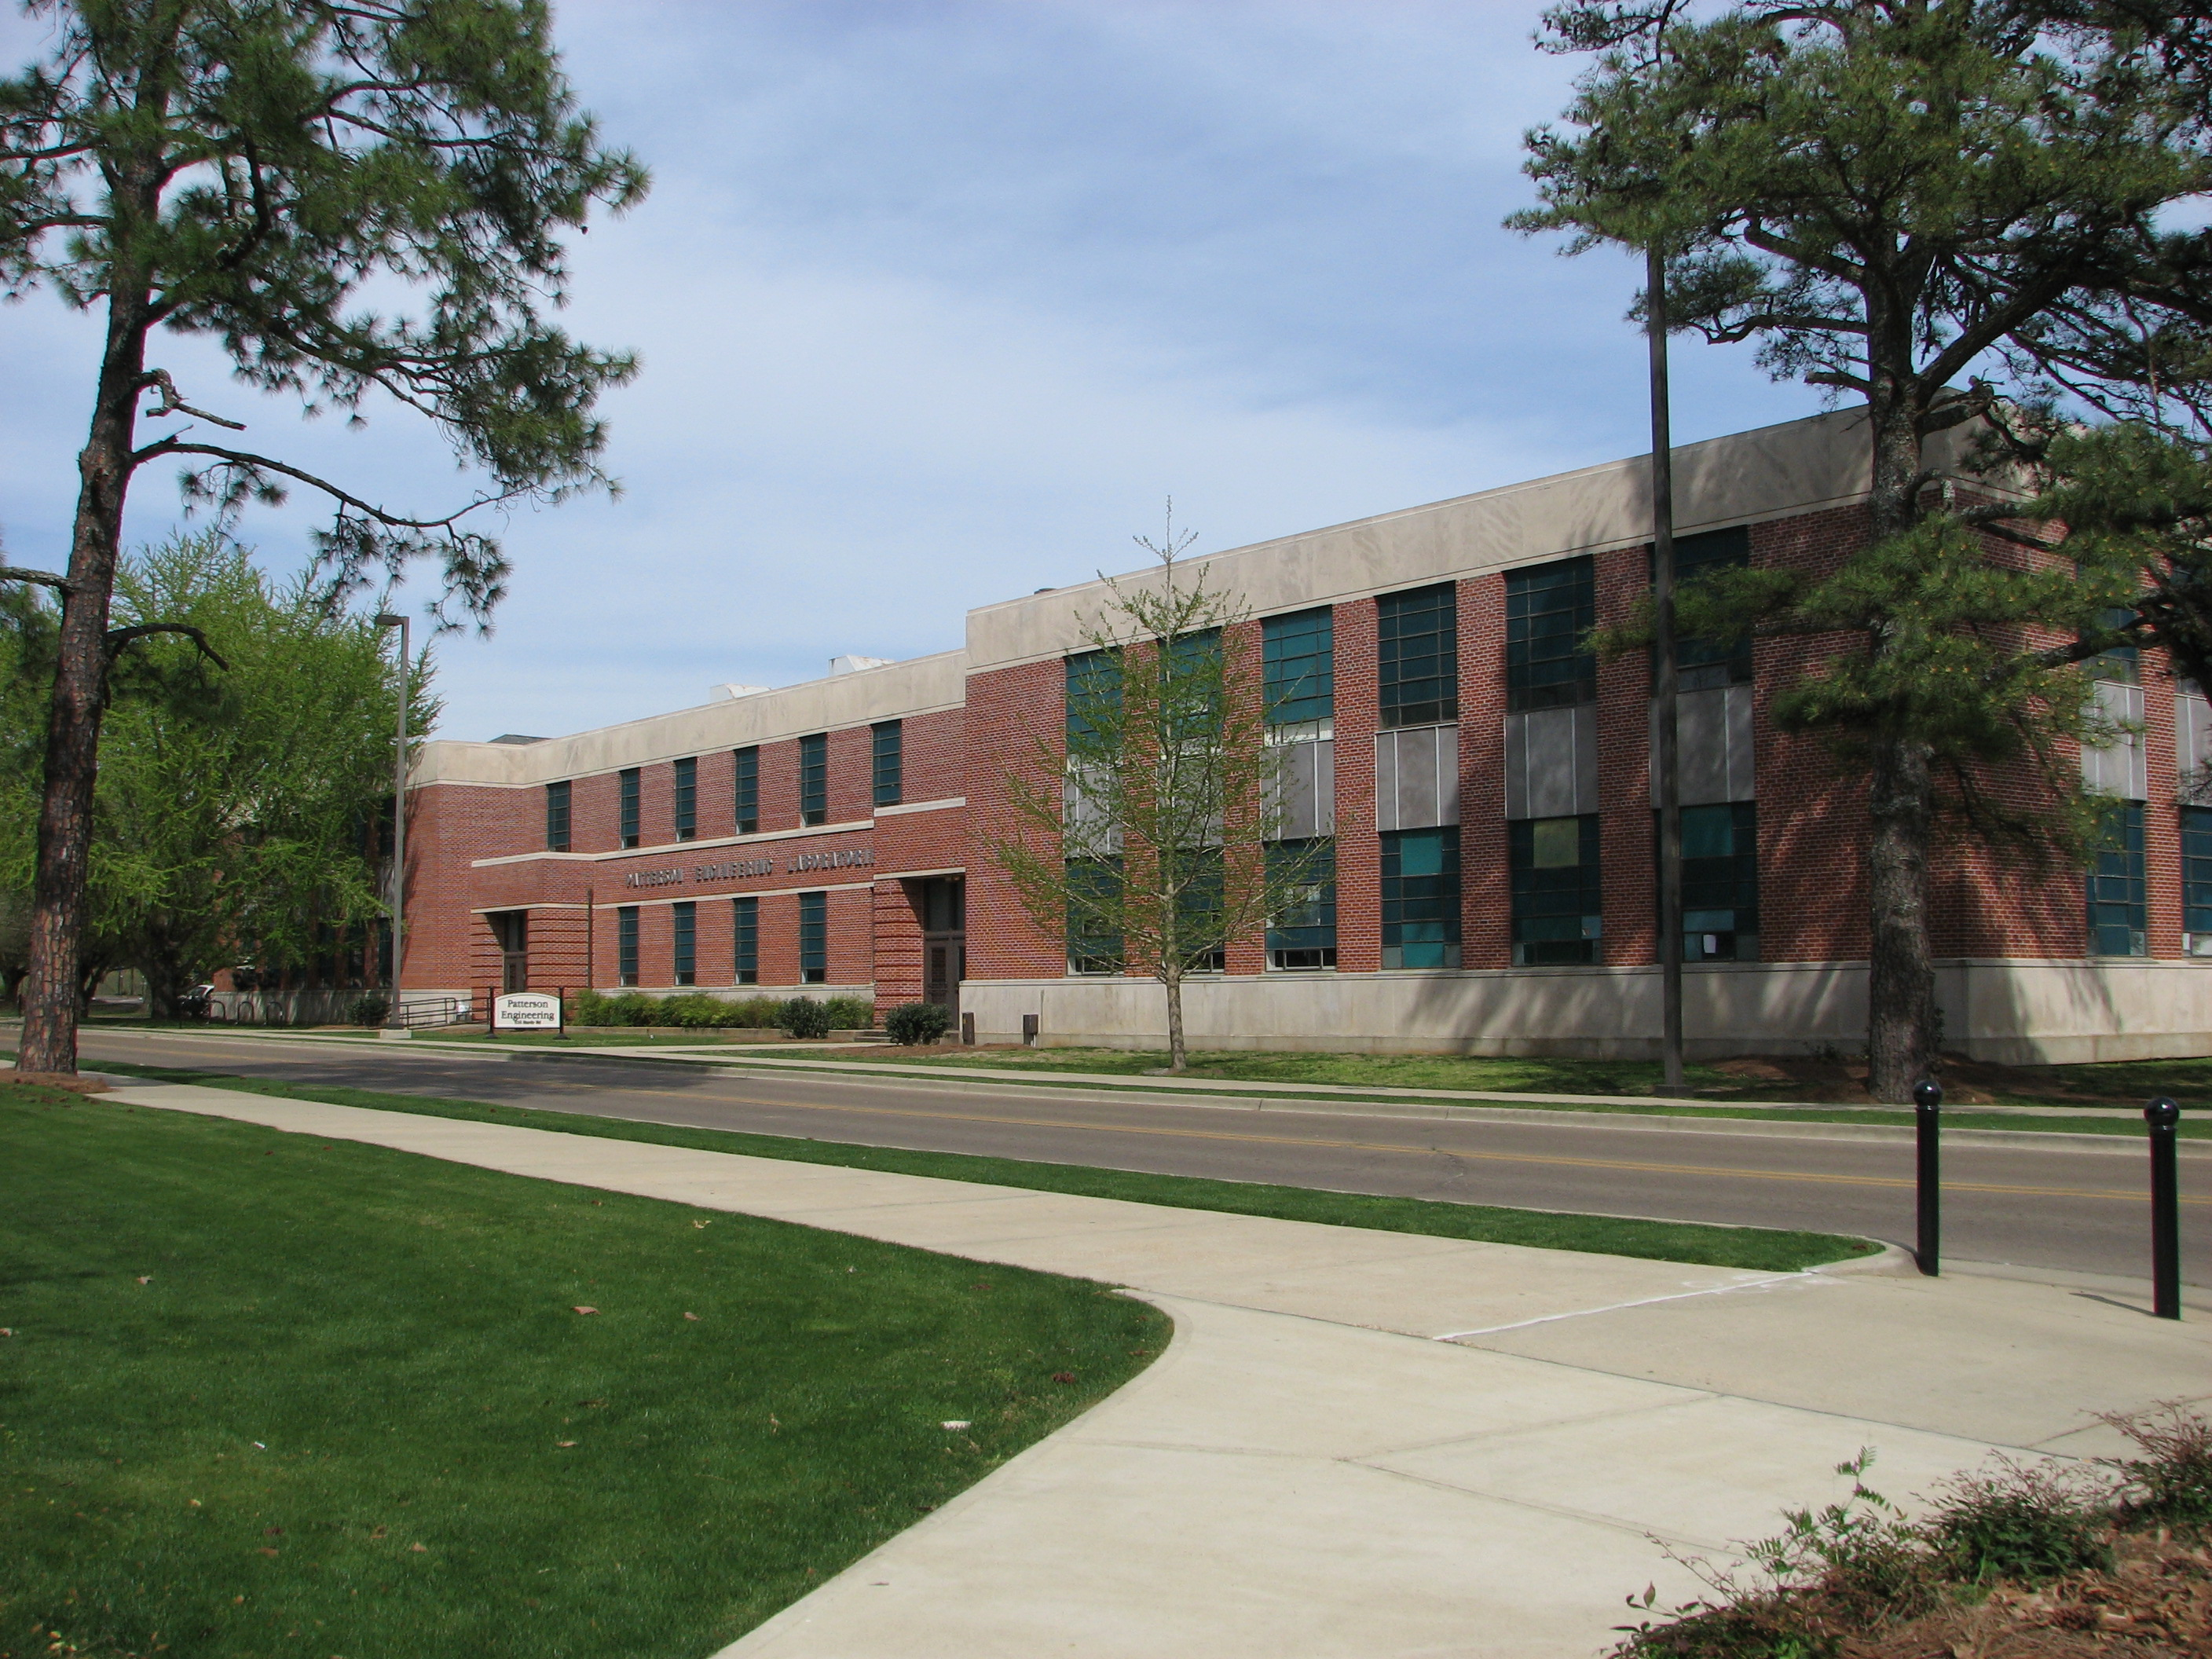 buildings of mississippi state university�patterson